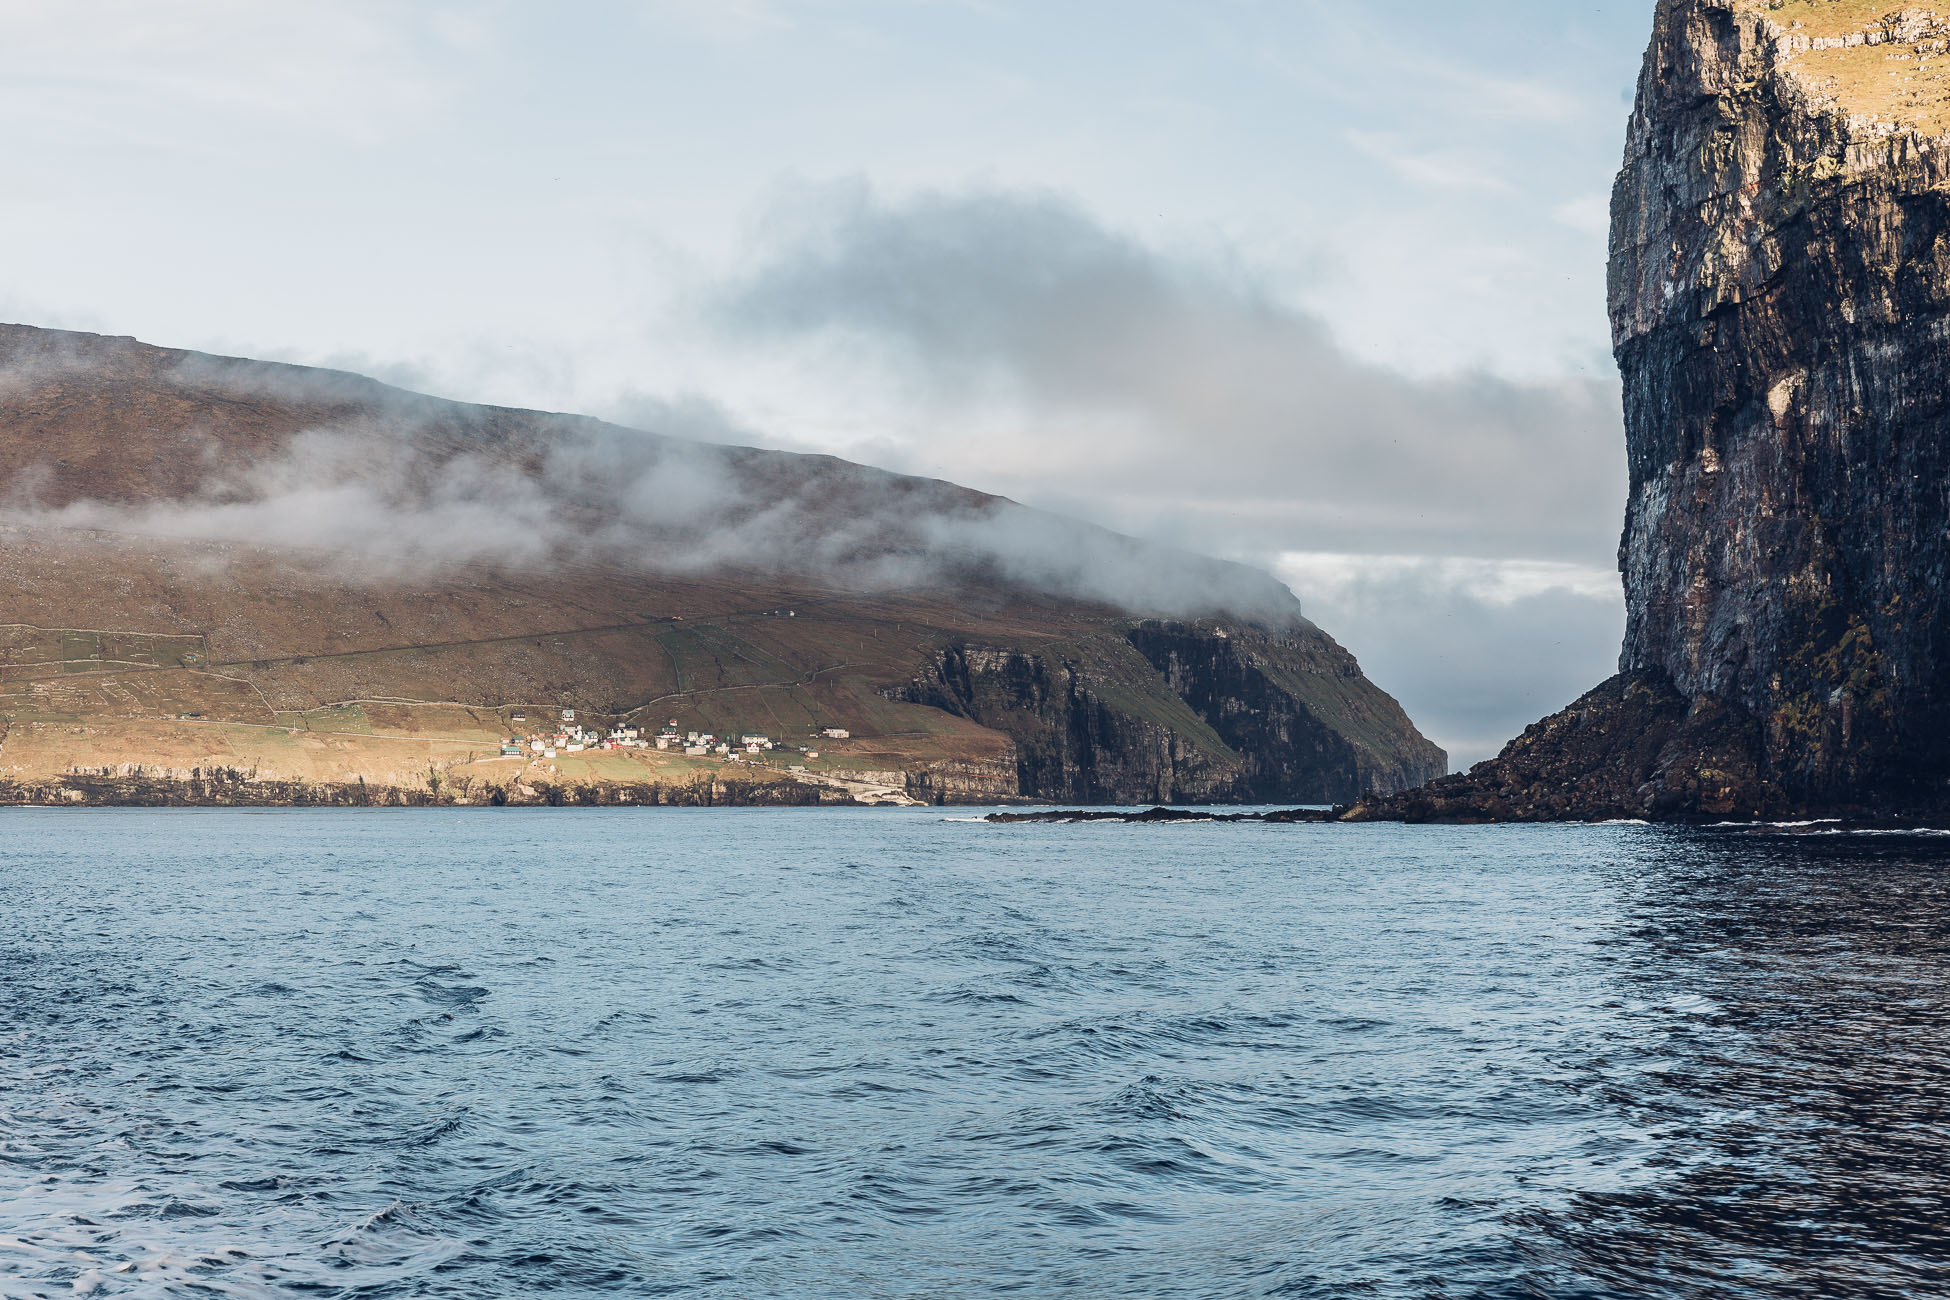 View from the ferry on the Faroe Islands